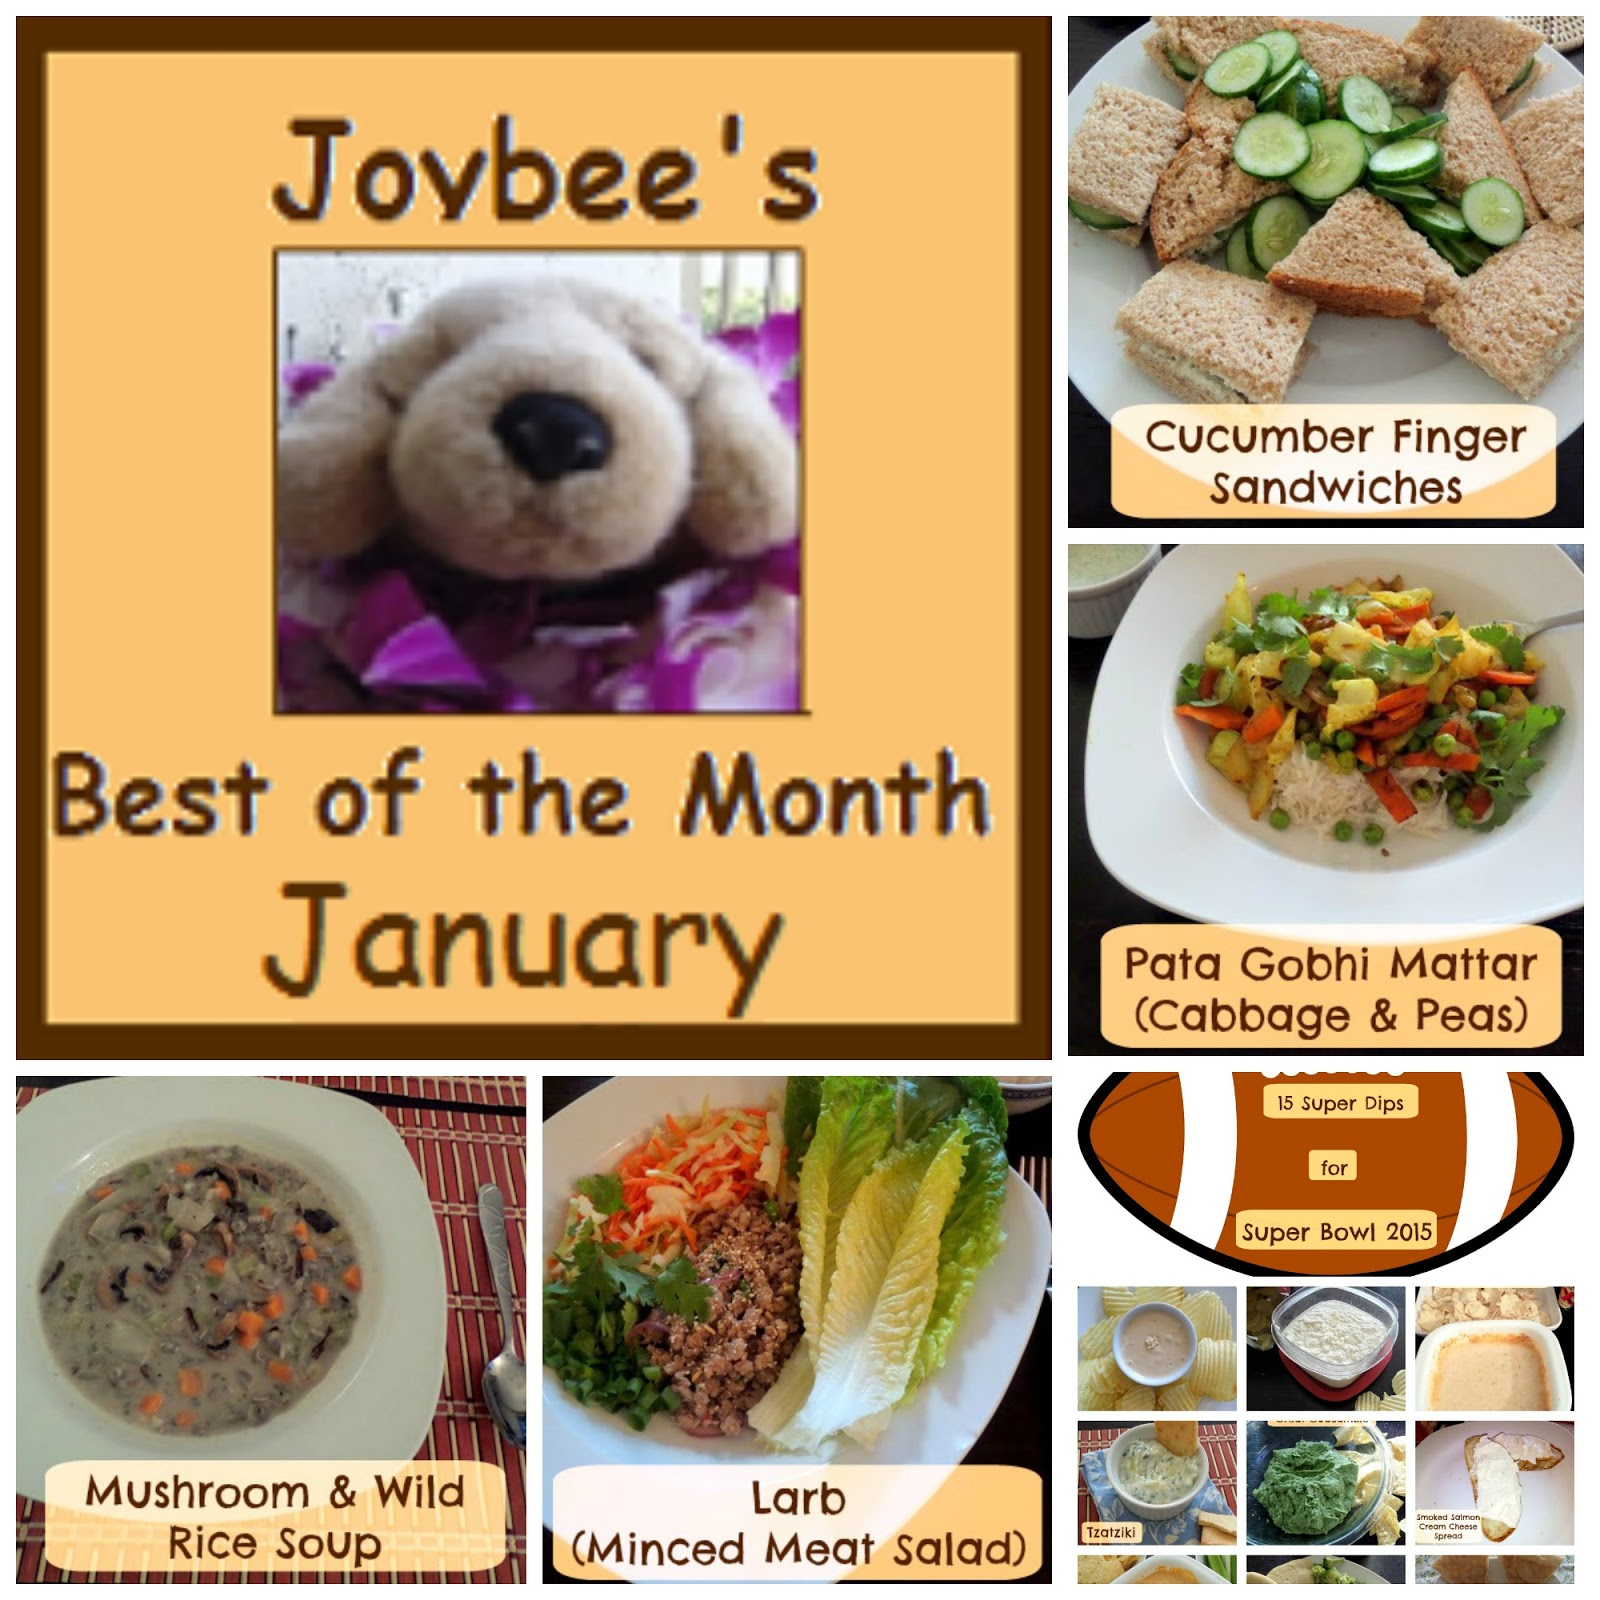 Best of the Month January 2015 | Joybee, What's for Dinner?